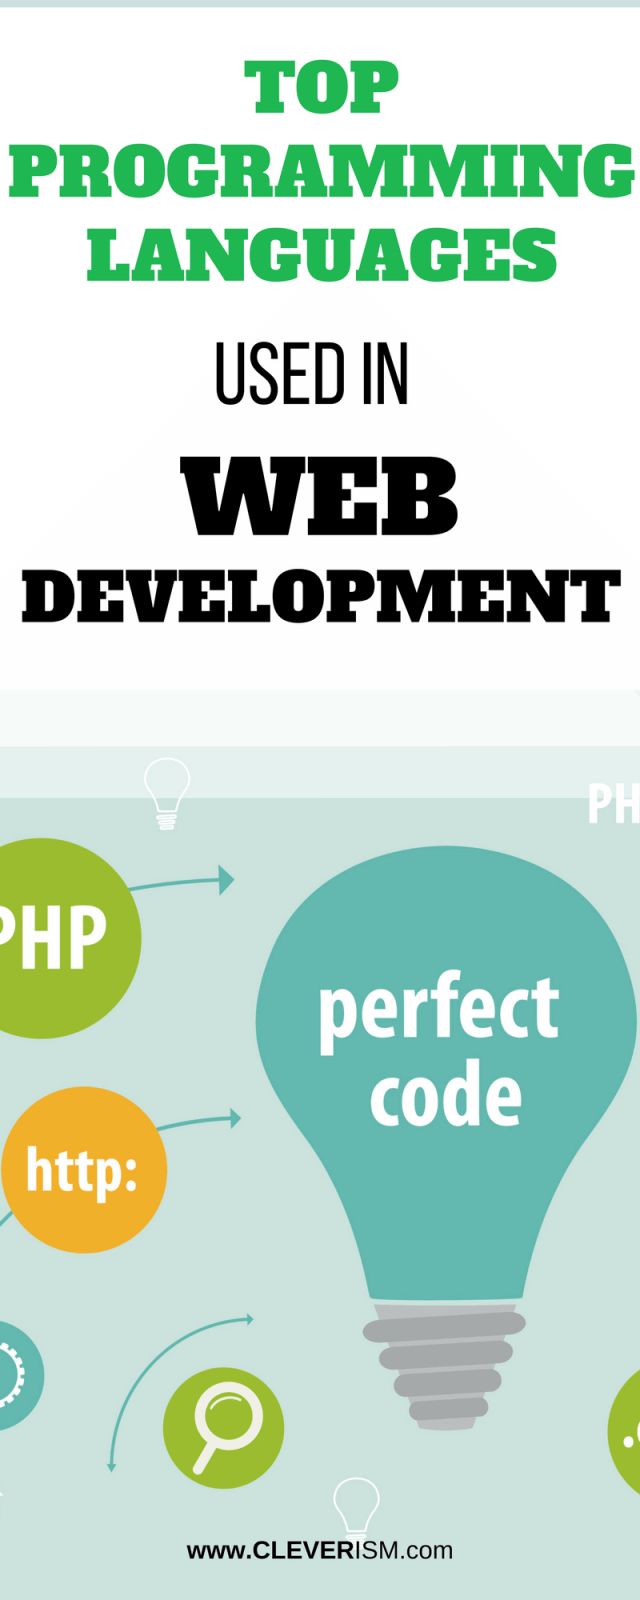 Top Programming Languages used in Web Development on